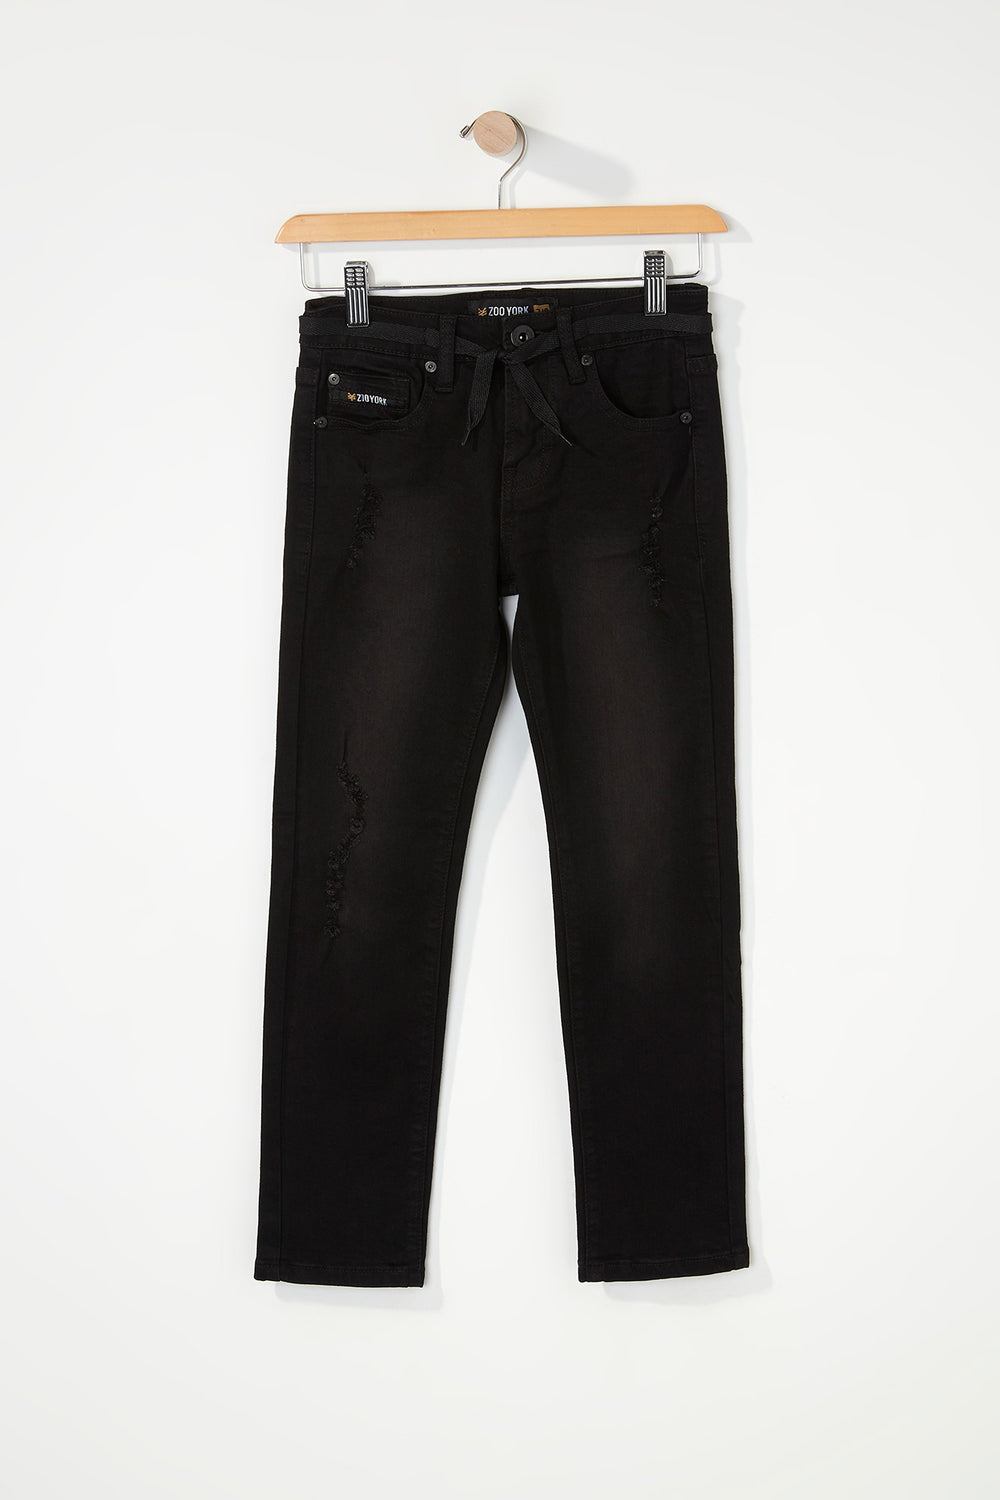 Zoo York Boys Distressed Black Stretch Skinny Jeans Solid Black